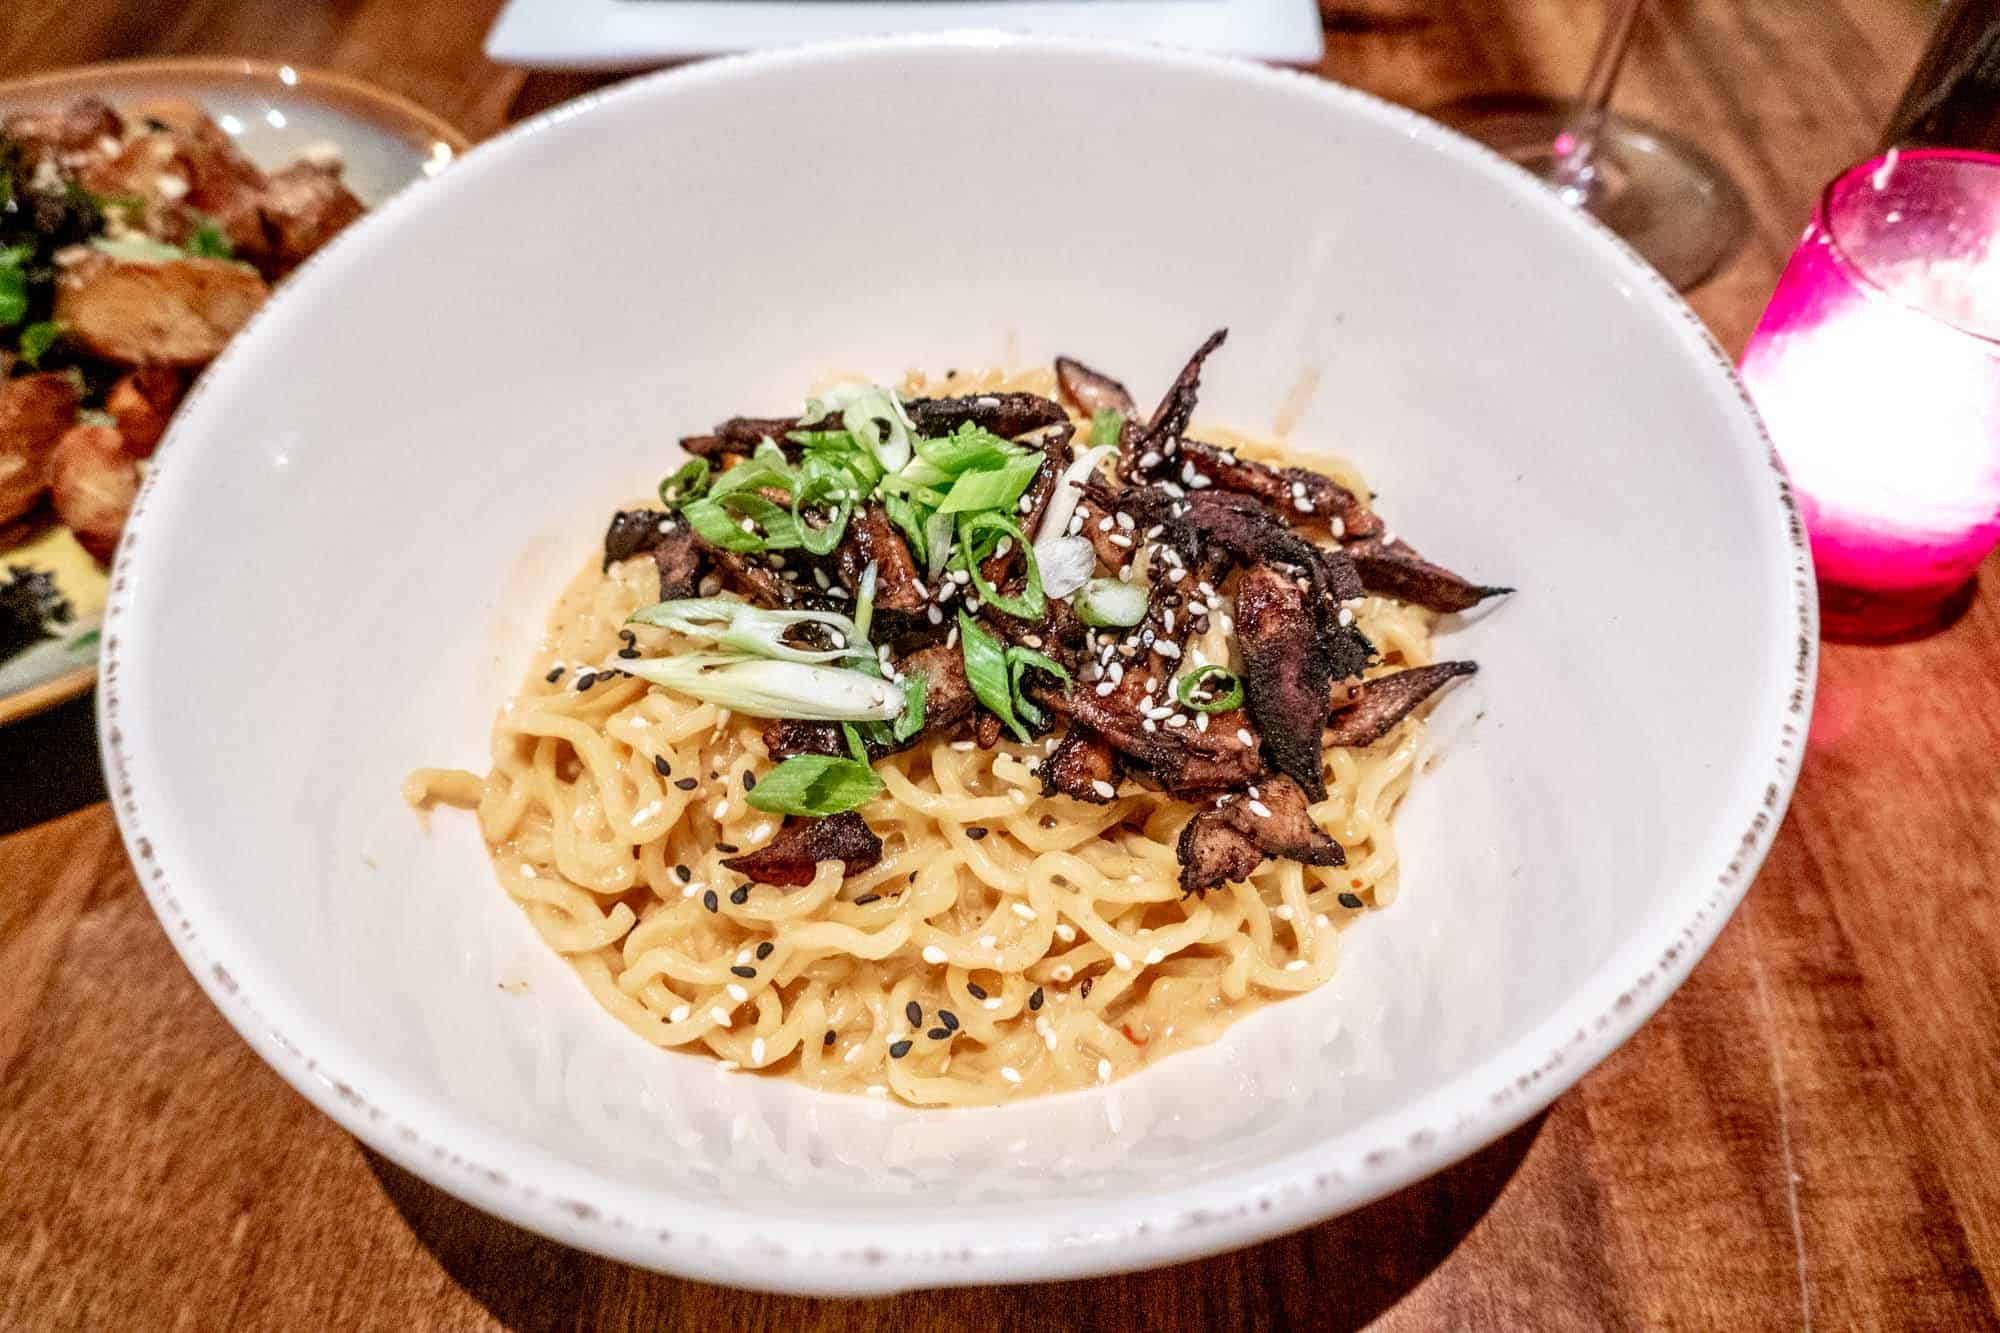 Noodles with mushrooms in bowl